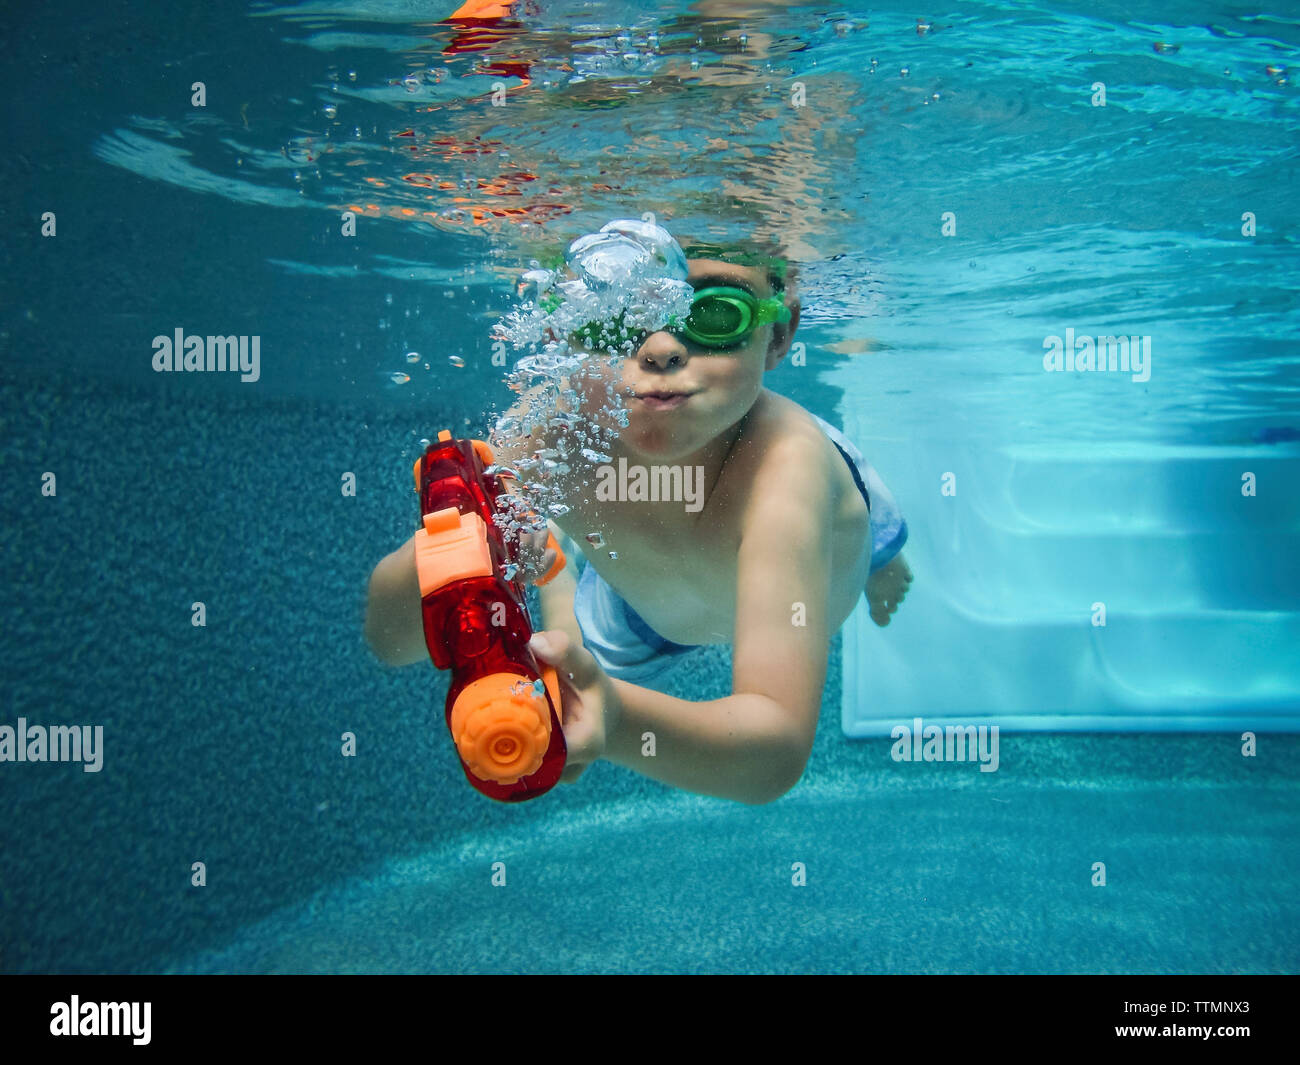 Playful shirtless boy with squirt gun swimming in pool - Stock Image